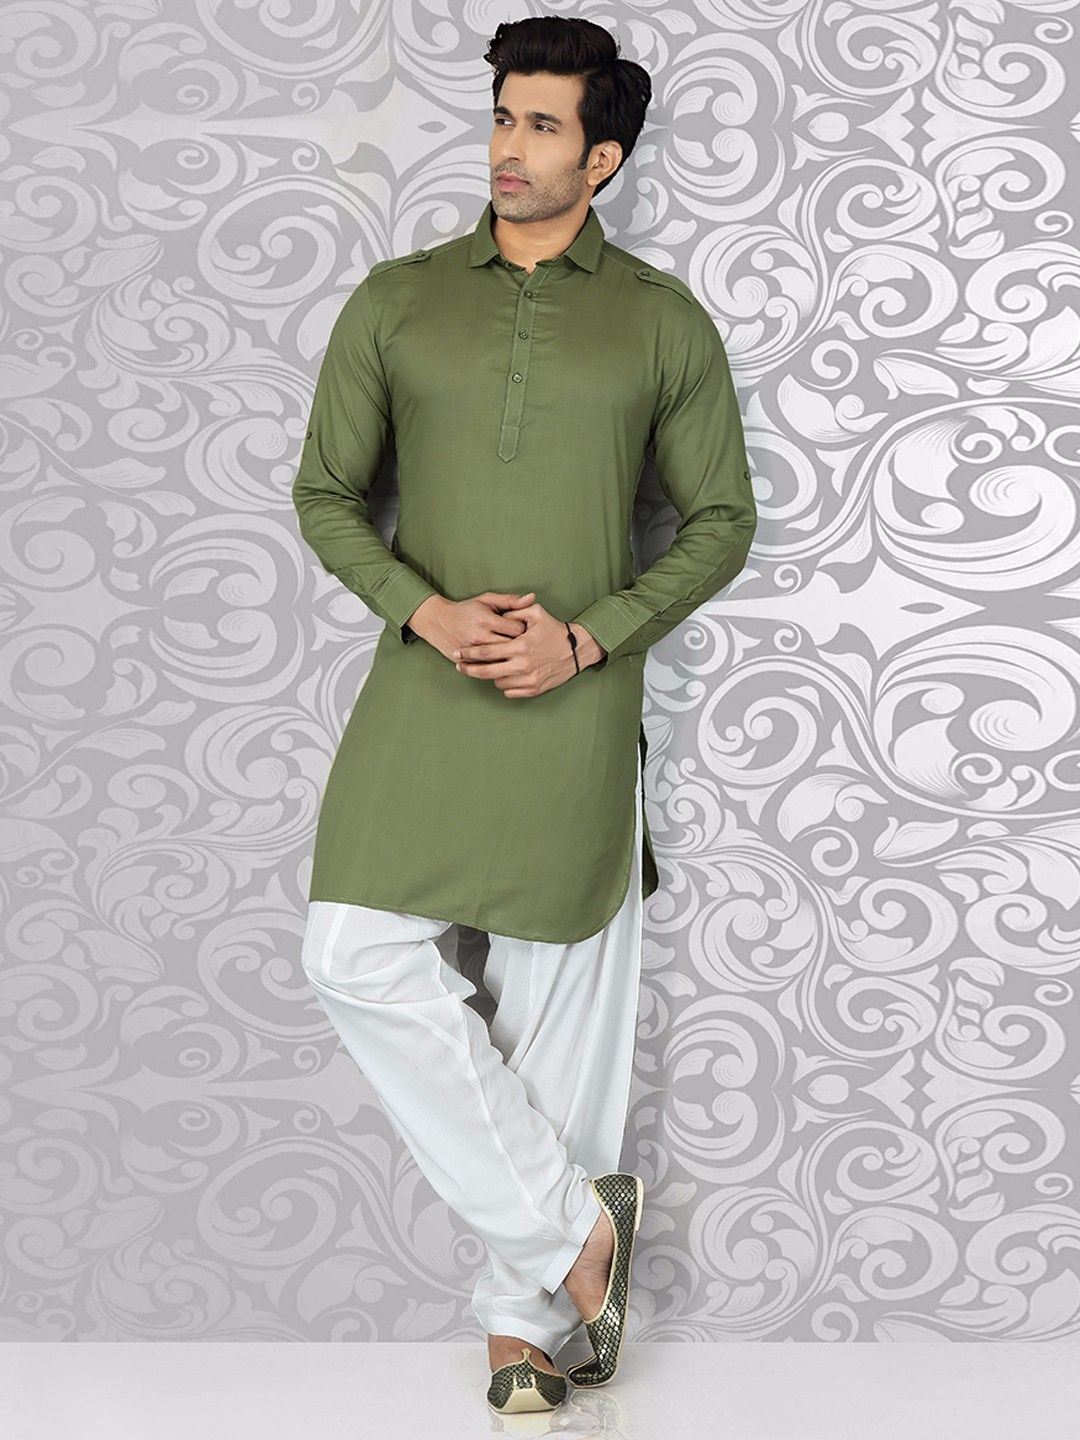 Buy Kurta Indian dresses for men picture trends